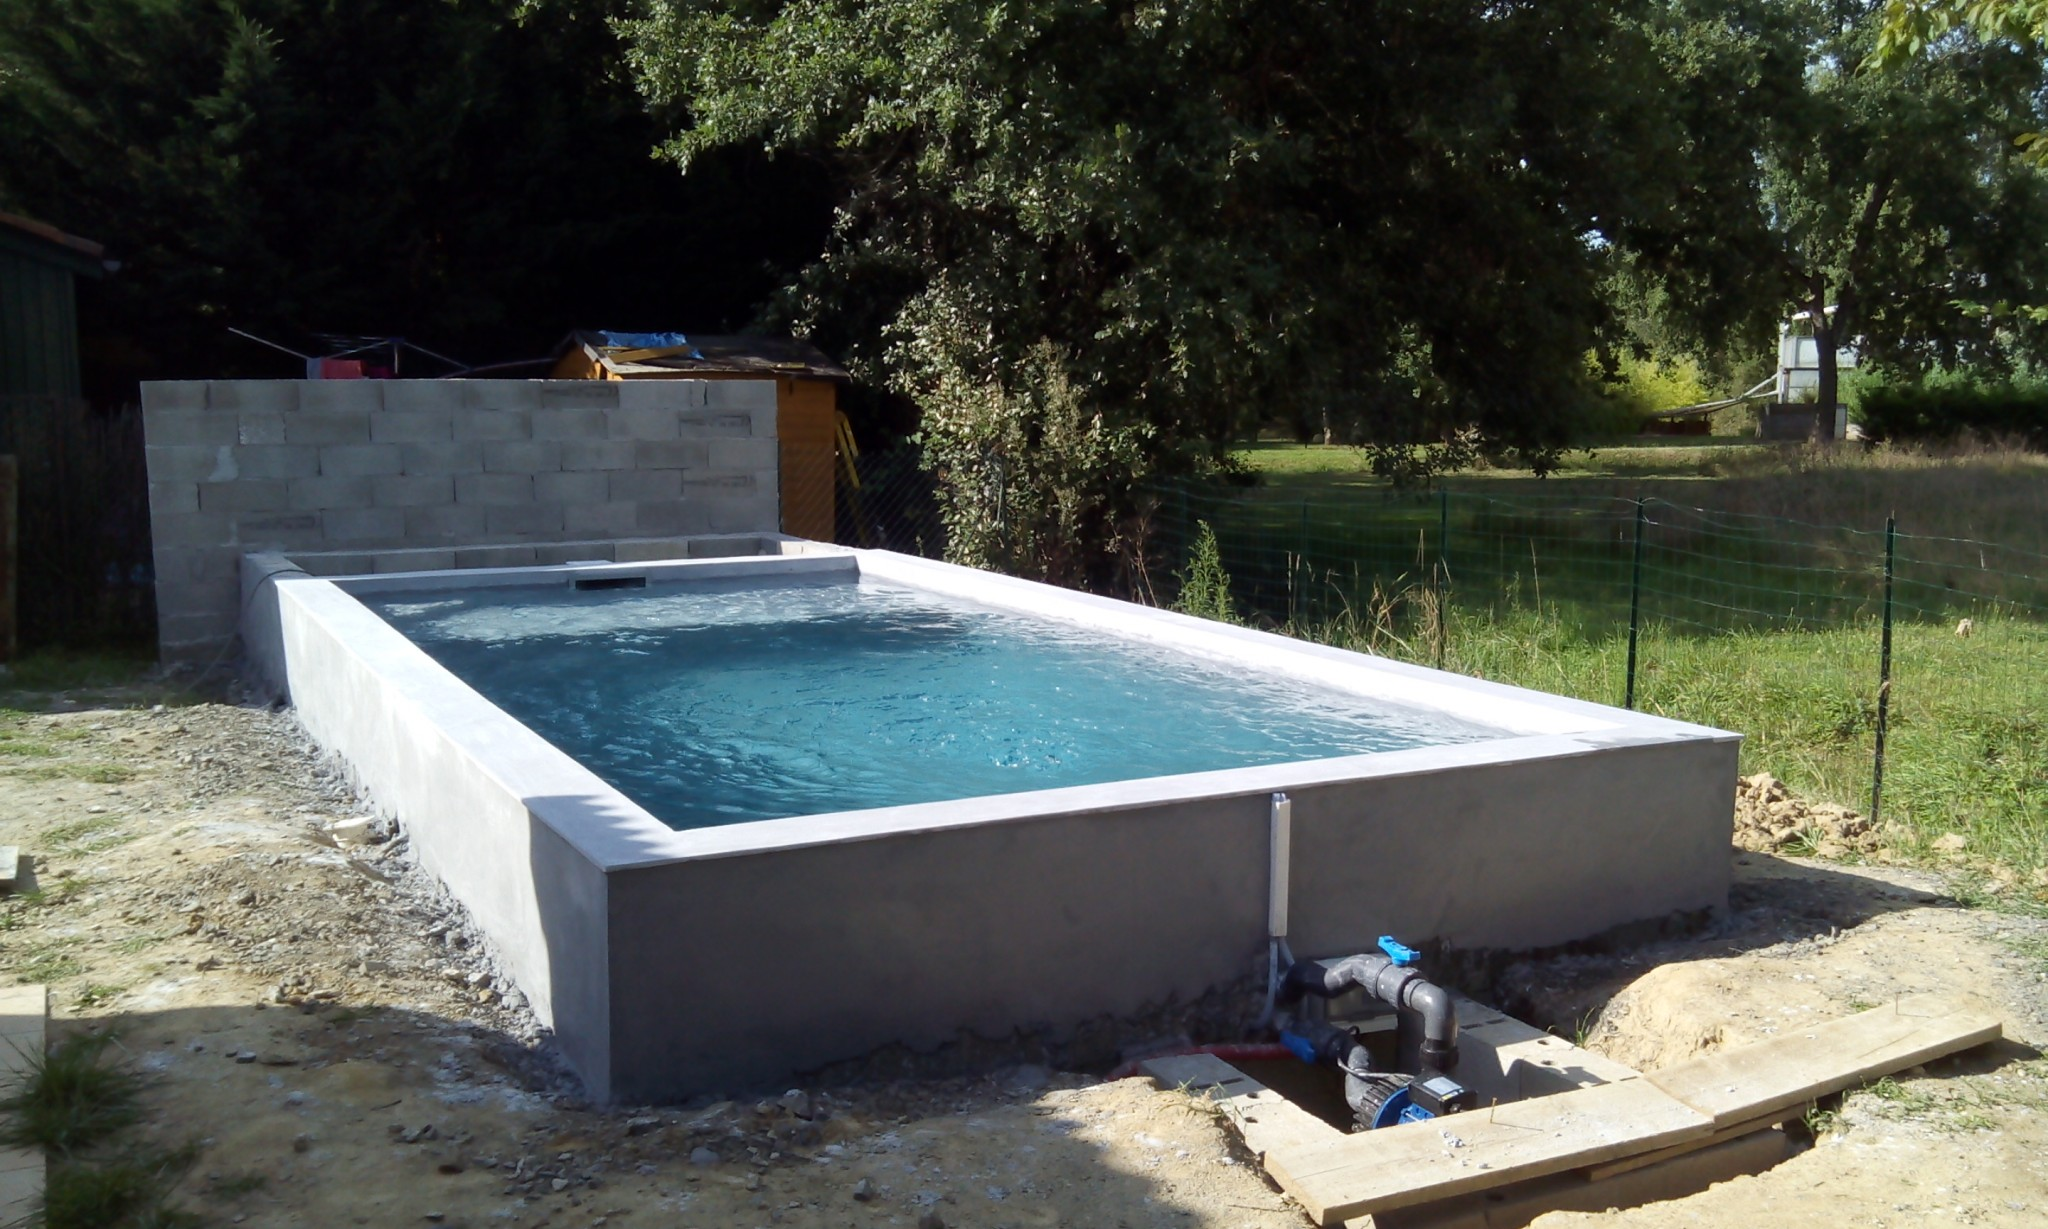 Exceptionnel piscine du colombier 2 chantier mini for Mini piscine